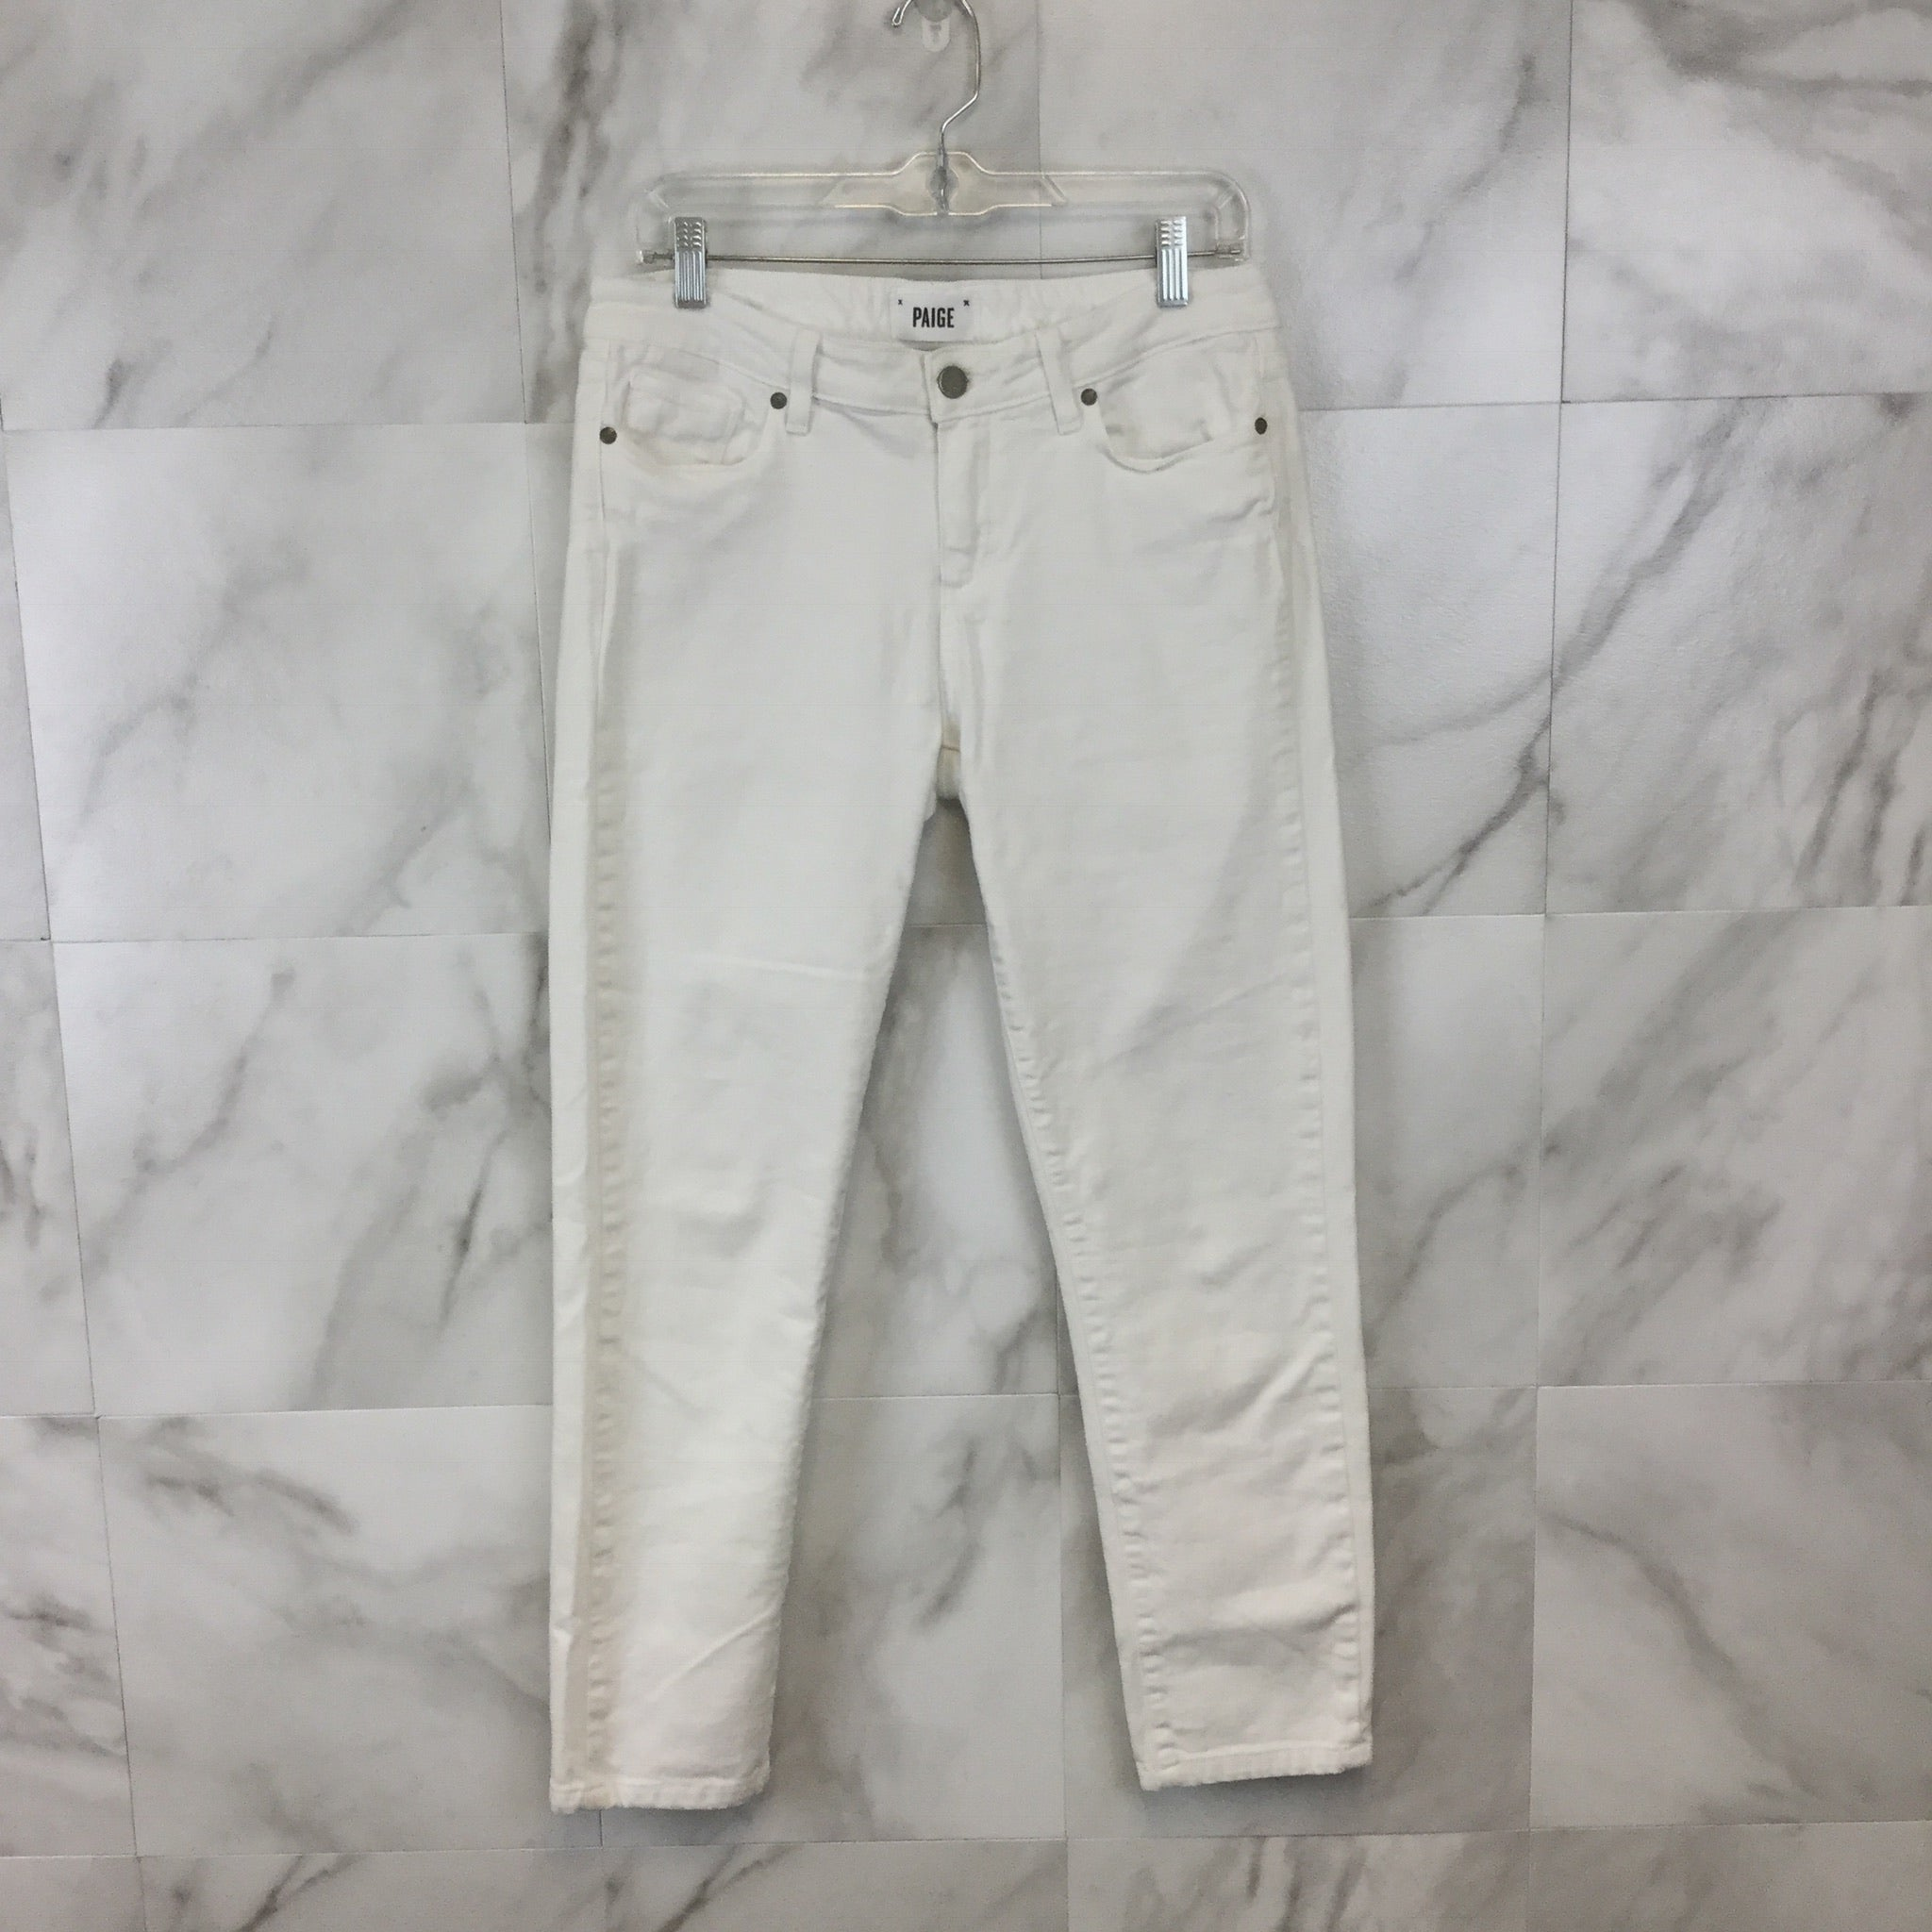 Paige White Skinny Jeans size 31